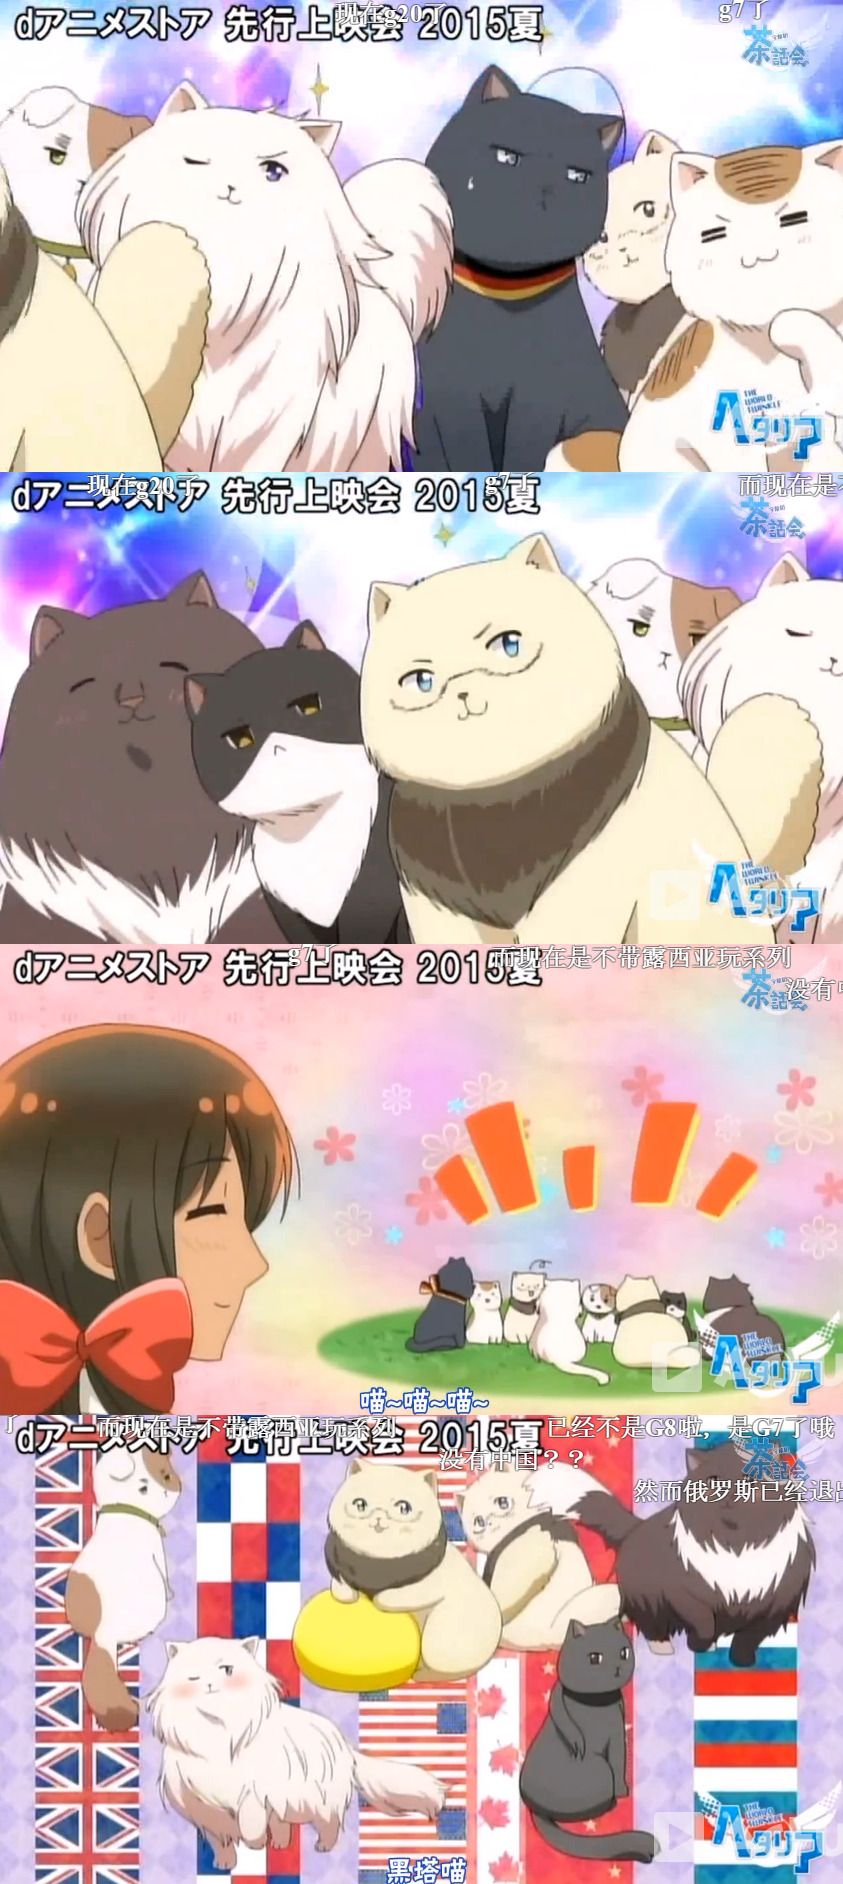 Can anyone else tell exactly who is what cat without having seen the cat season of Hetalia, or is that just me?